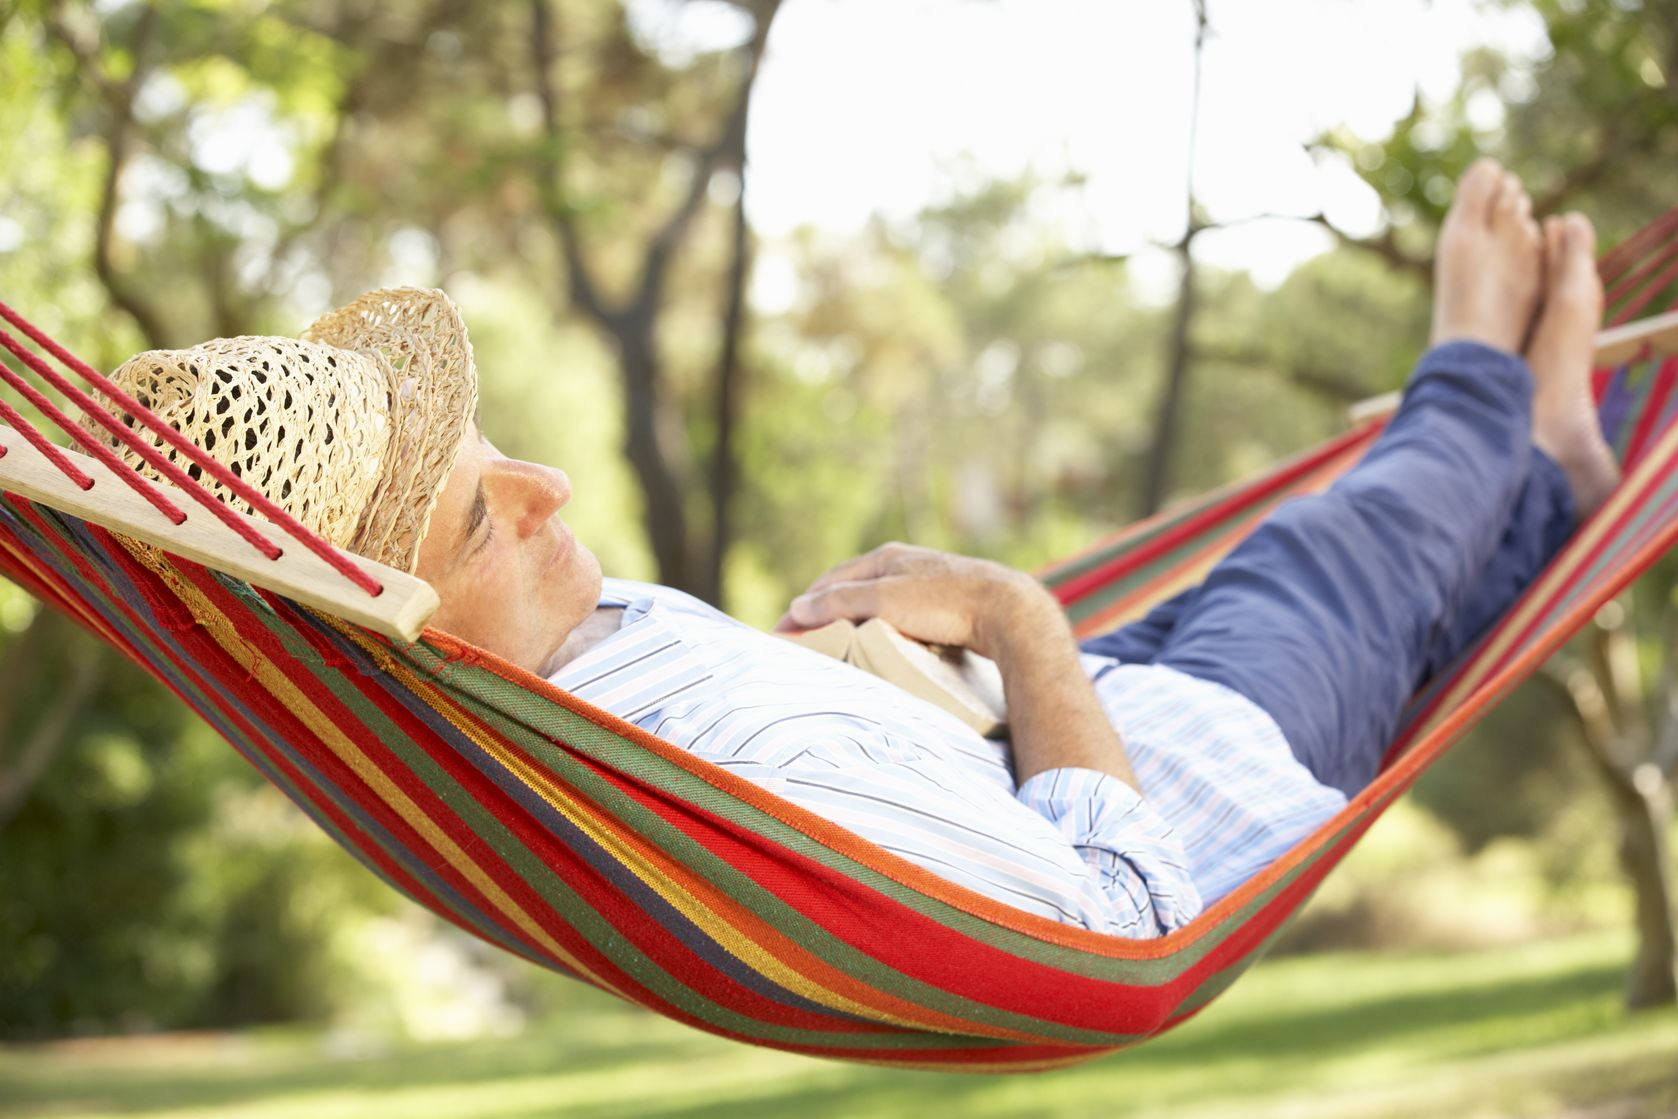 Man sleeping on hammock